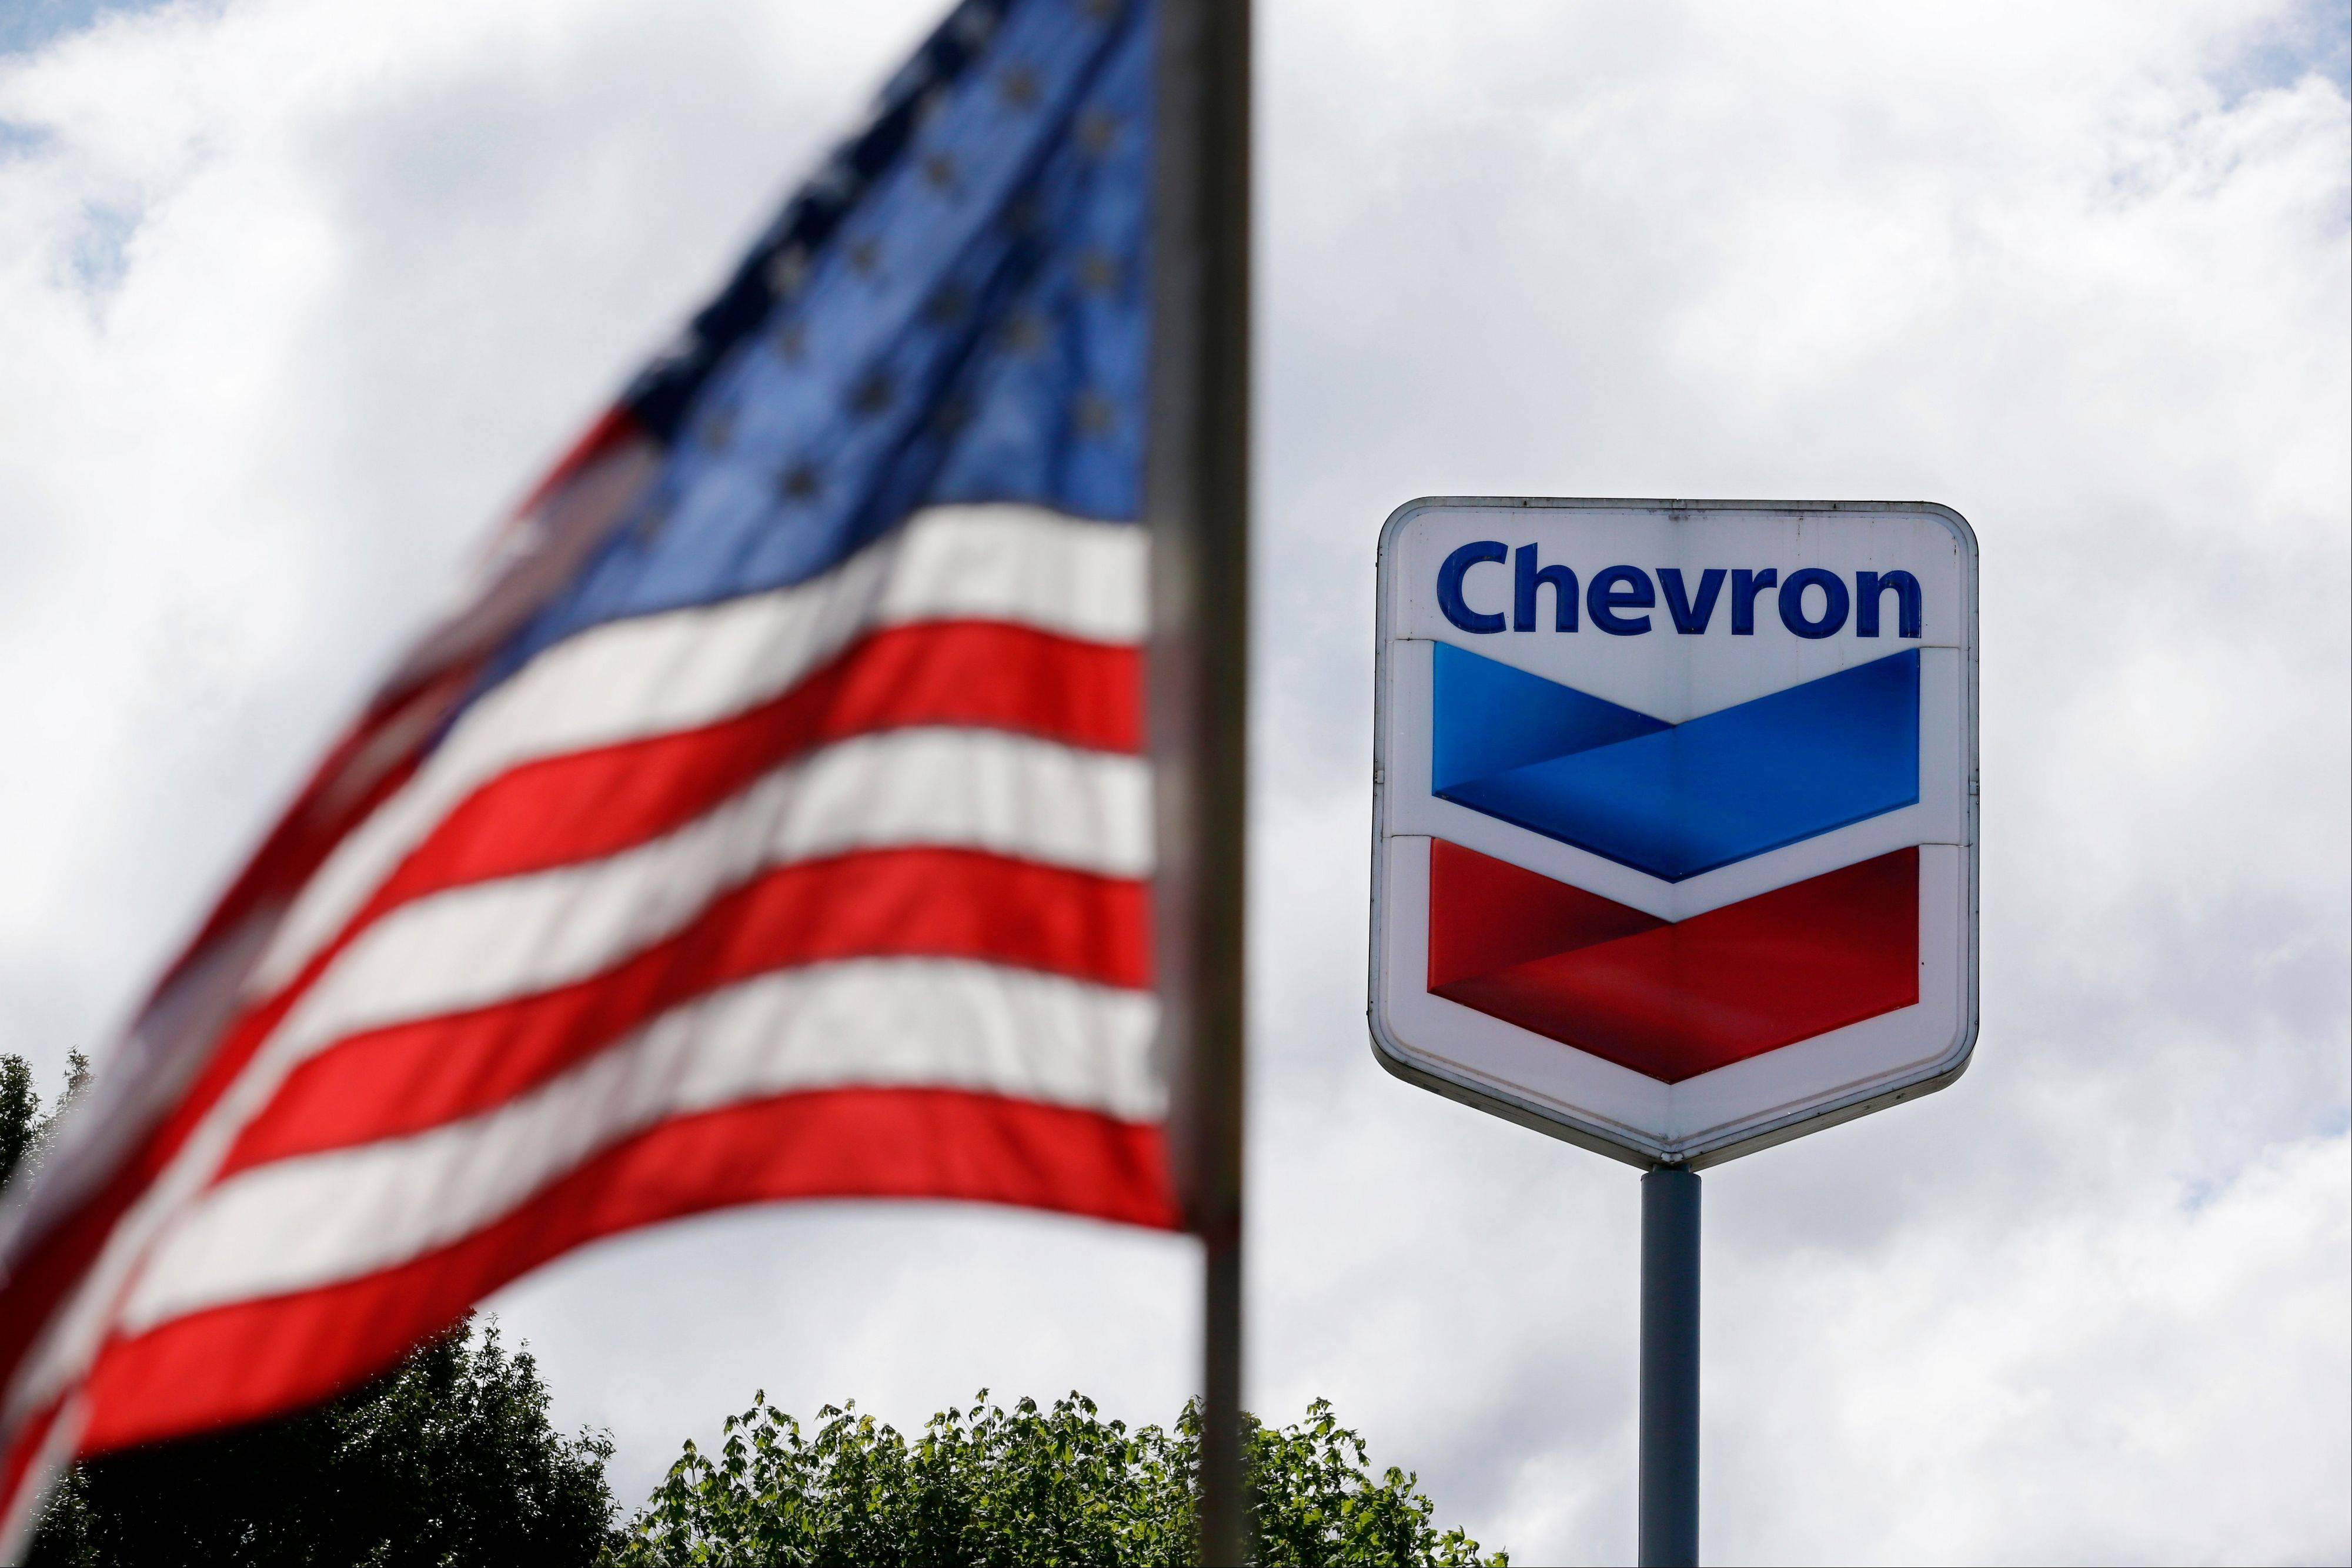 Energy stocks lagged the market after Chevron reported that its third-quarter income fell 6 percent, missing analysts� estimates, due to weakness in the company�s oil refining business. Chevron fell $1.95, or 1.6 percent, to $118.01.